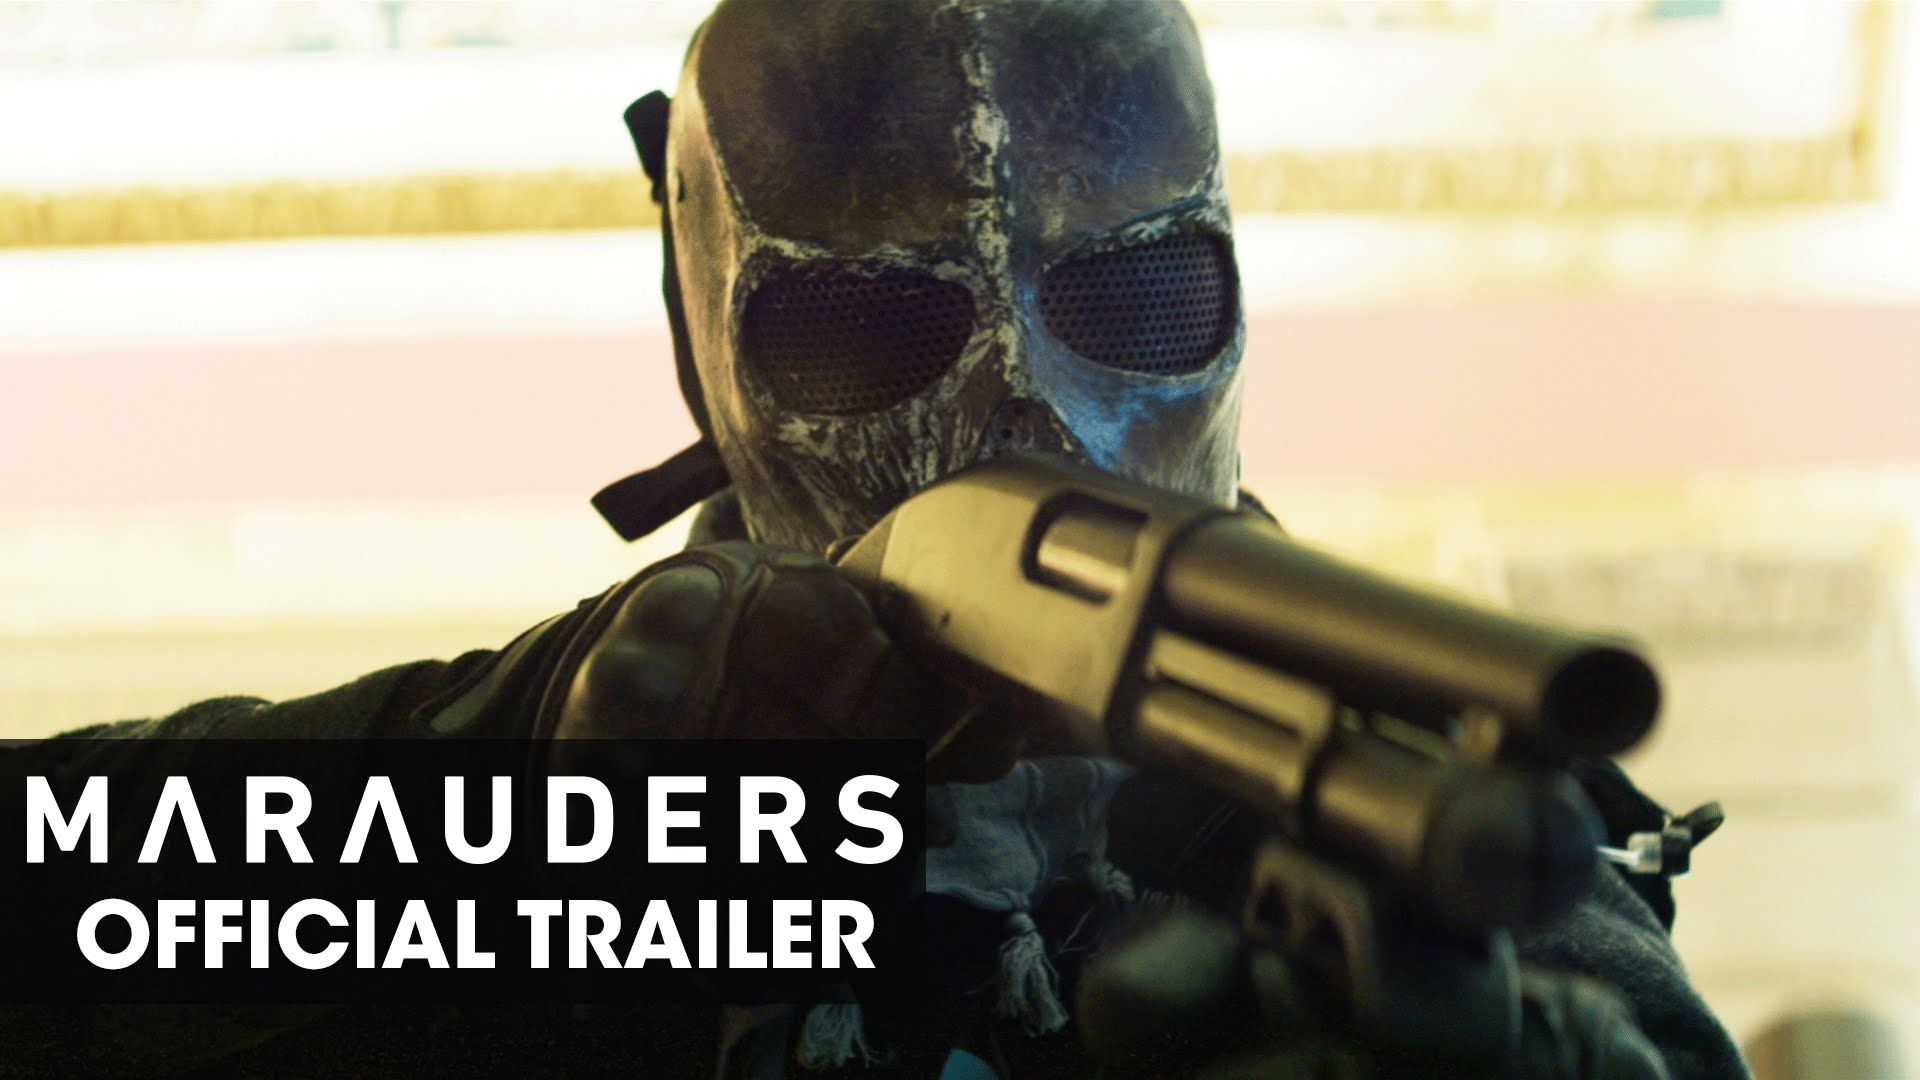 Marauders – Official Trailer